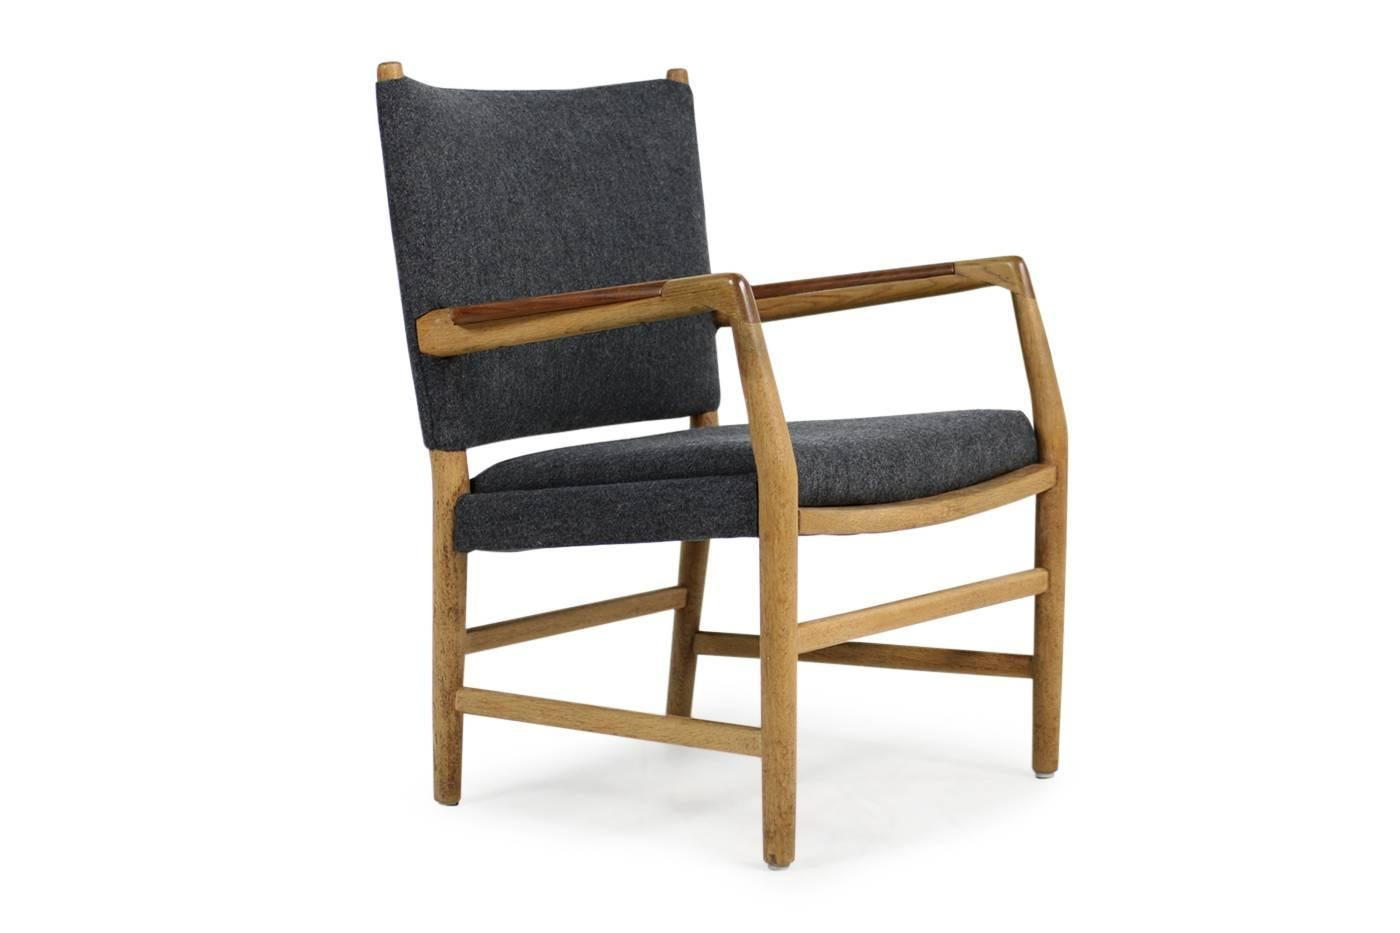 Aarhus Sessel 1950s Hans J Wegner Town Hall Chair Oak And Teak Mid Century Modern Design